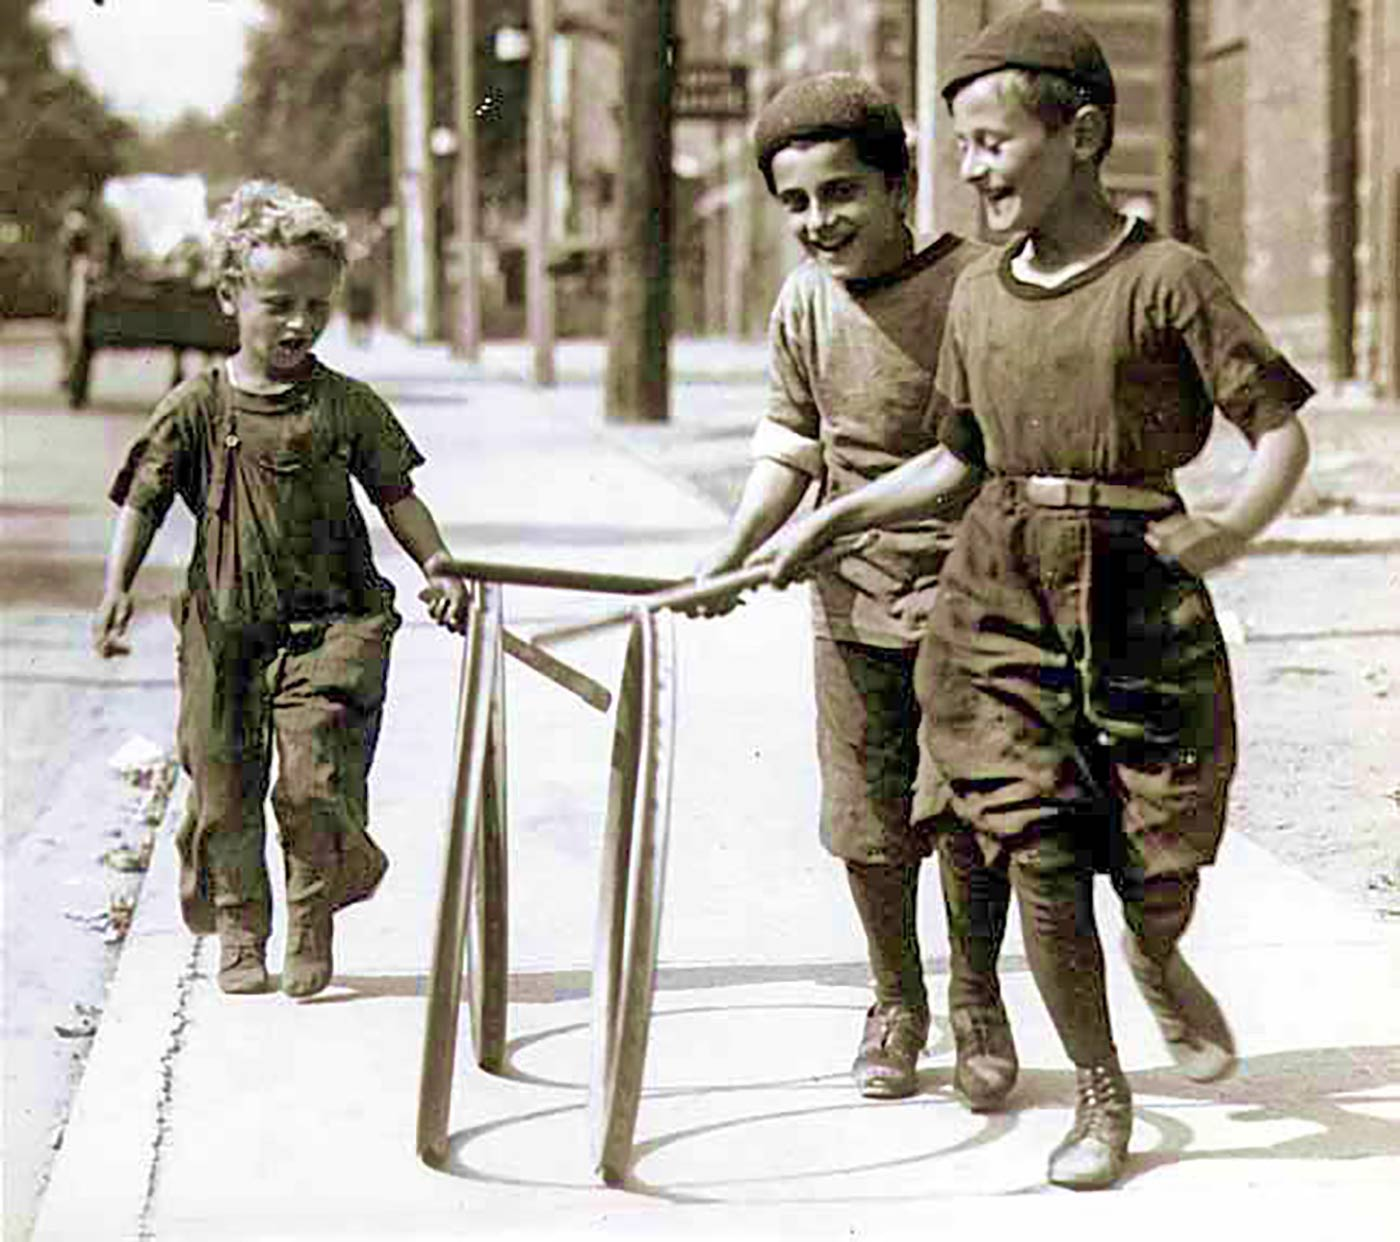 Boys playing with hoops on Chesnut Street, Toronto, Canada, 1922.